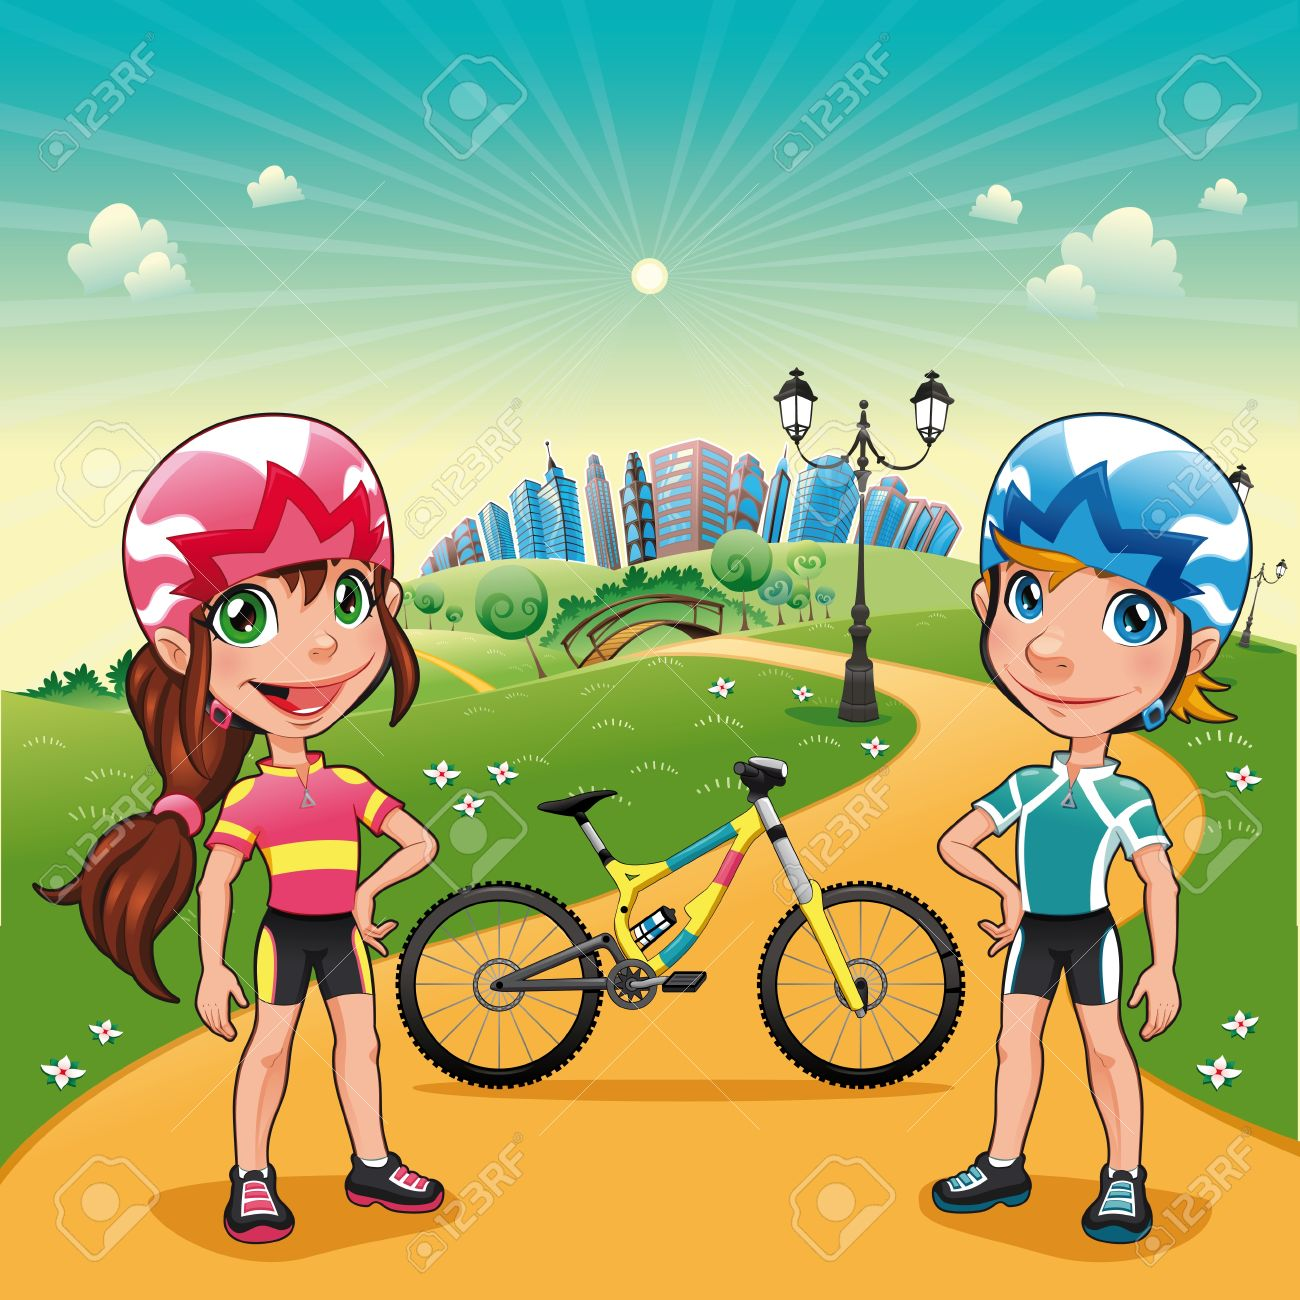 Park with young bikers. Funny cartoon and vector scene. Stock Vector - 13241559